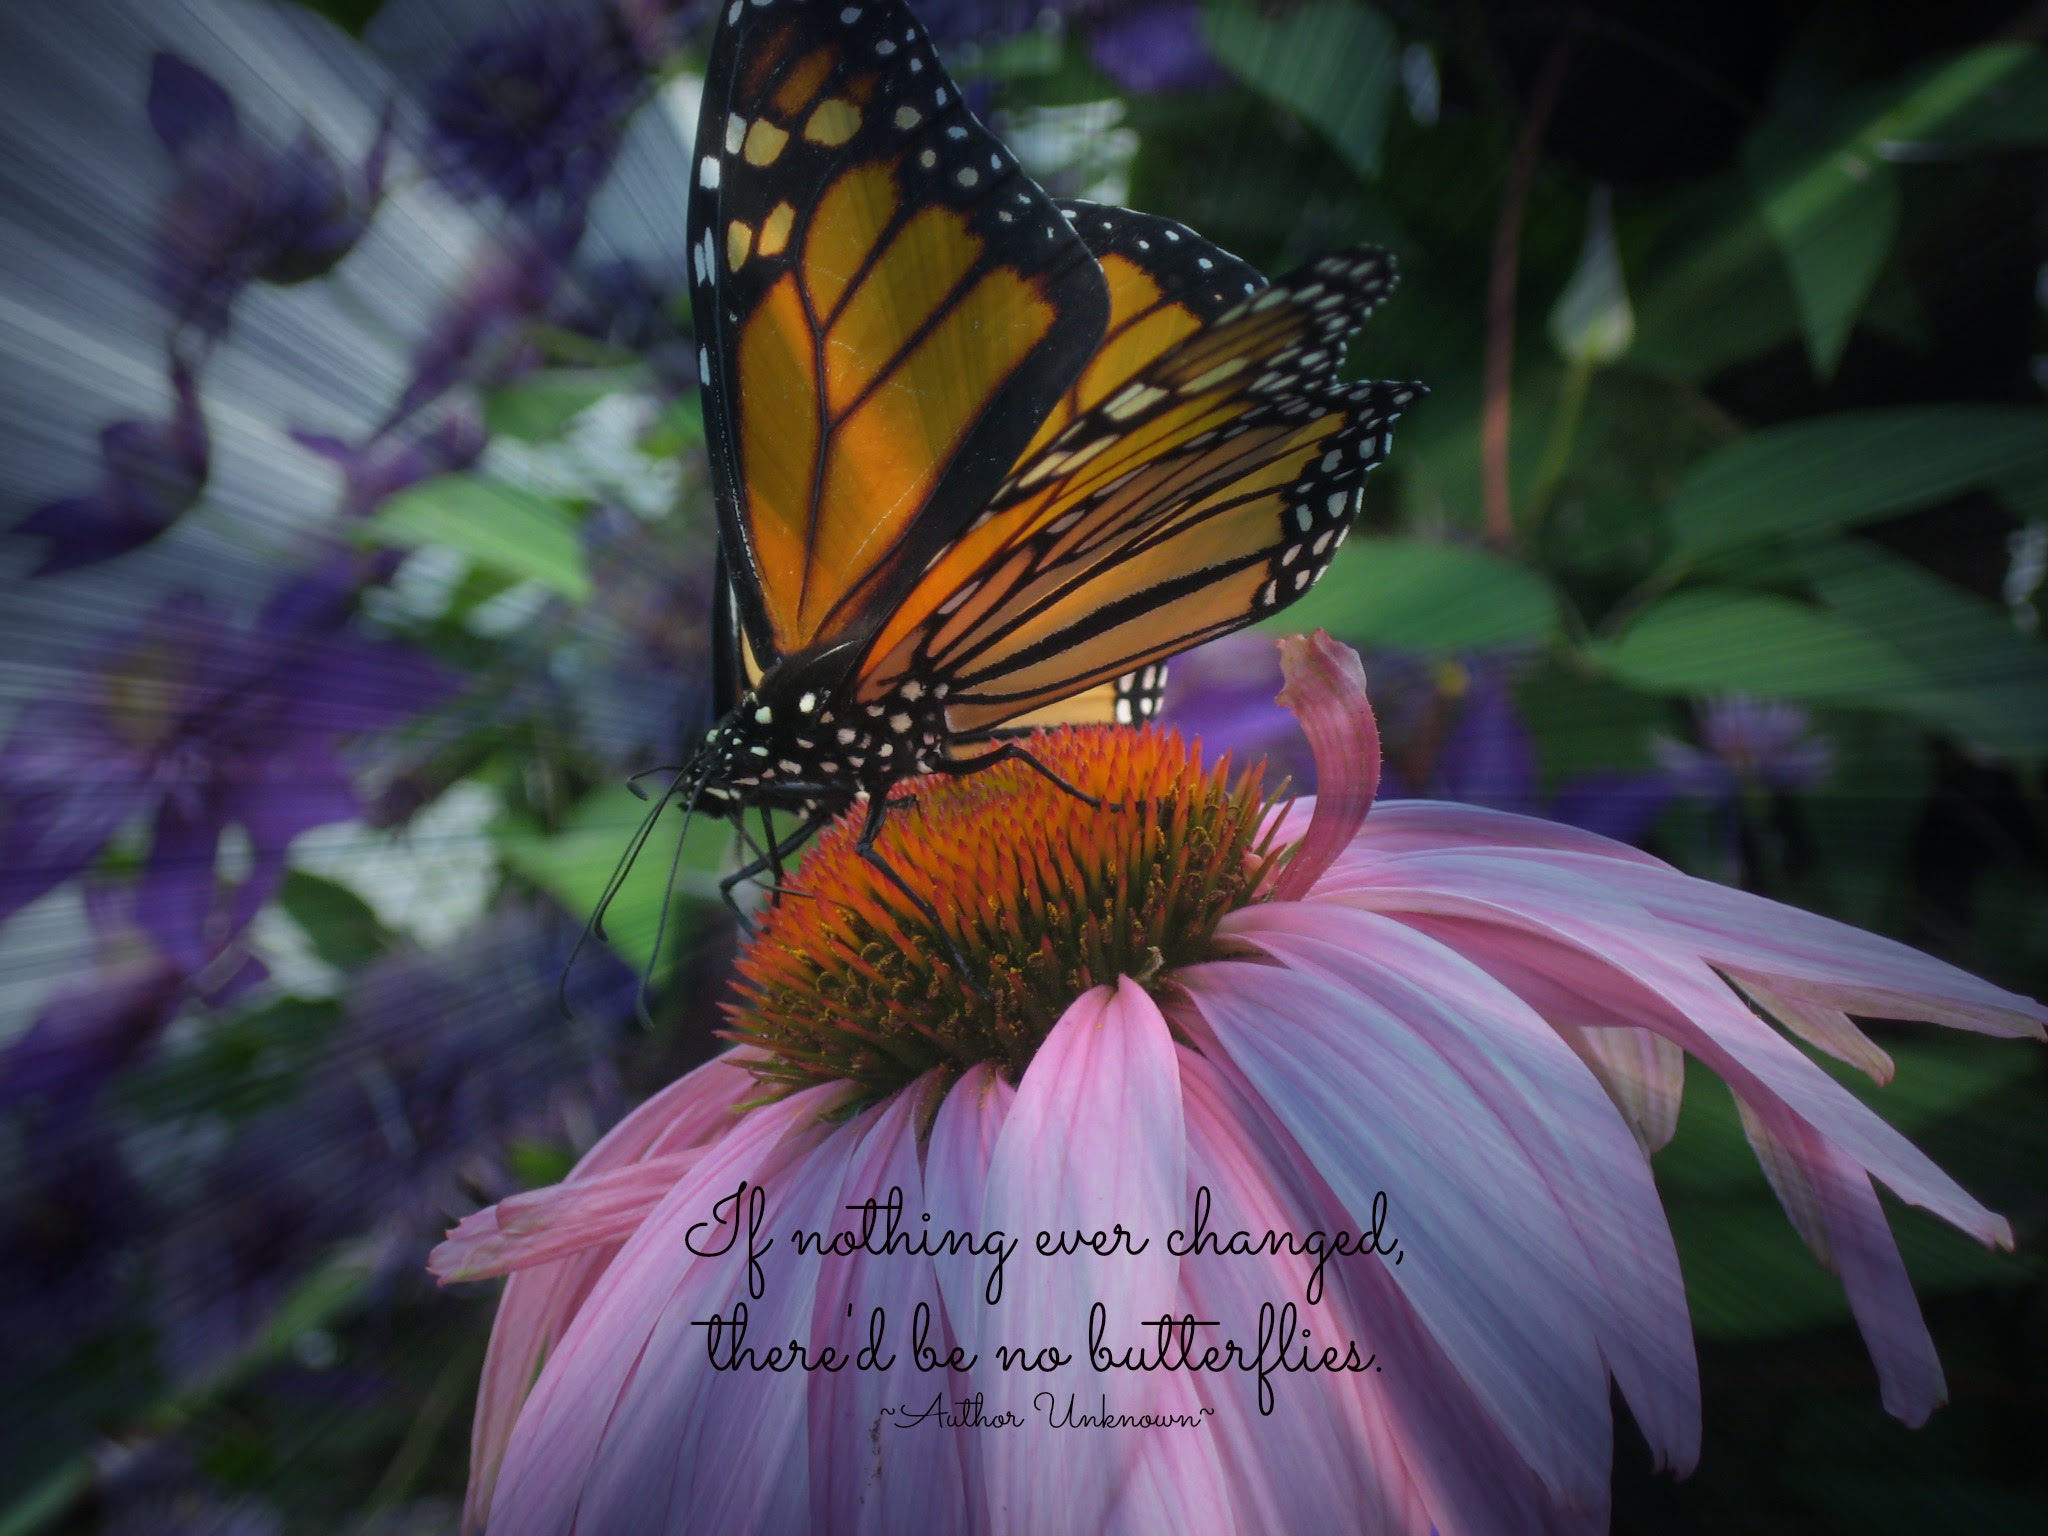 Butterfly Poems And Sayings An Assortment Of Poems About Butterflies